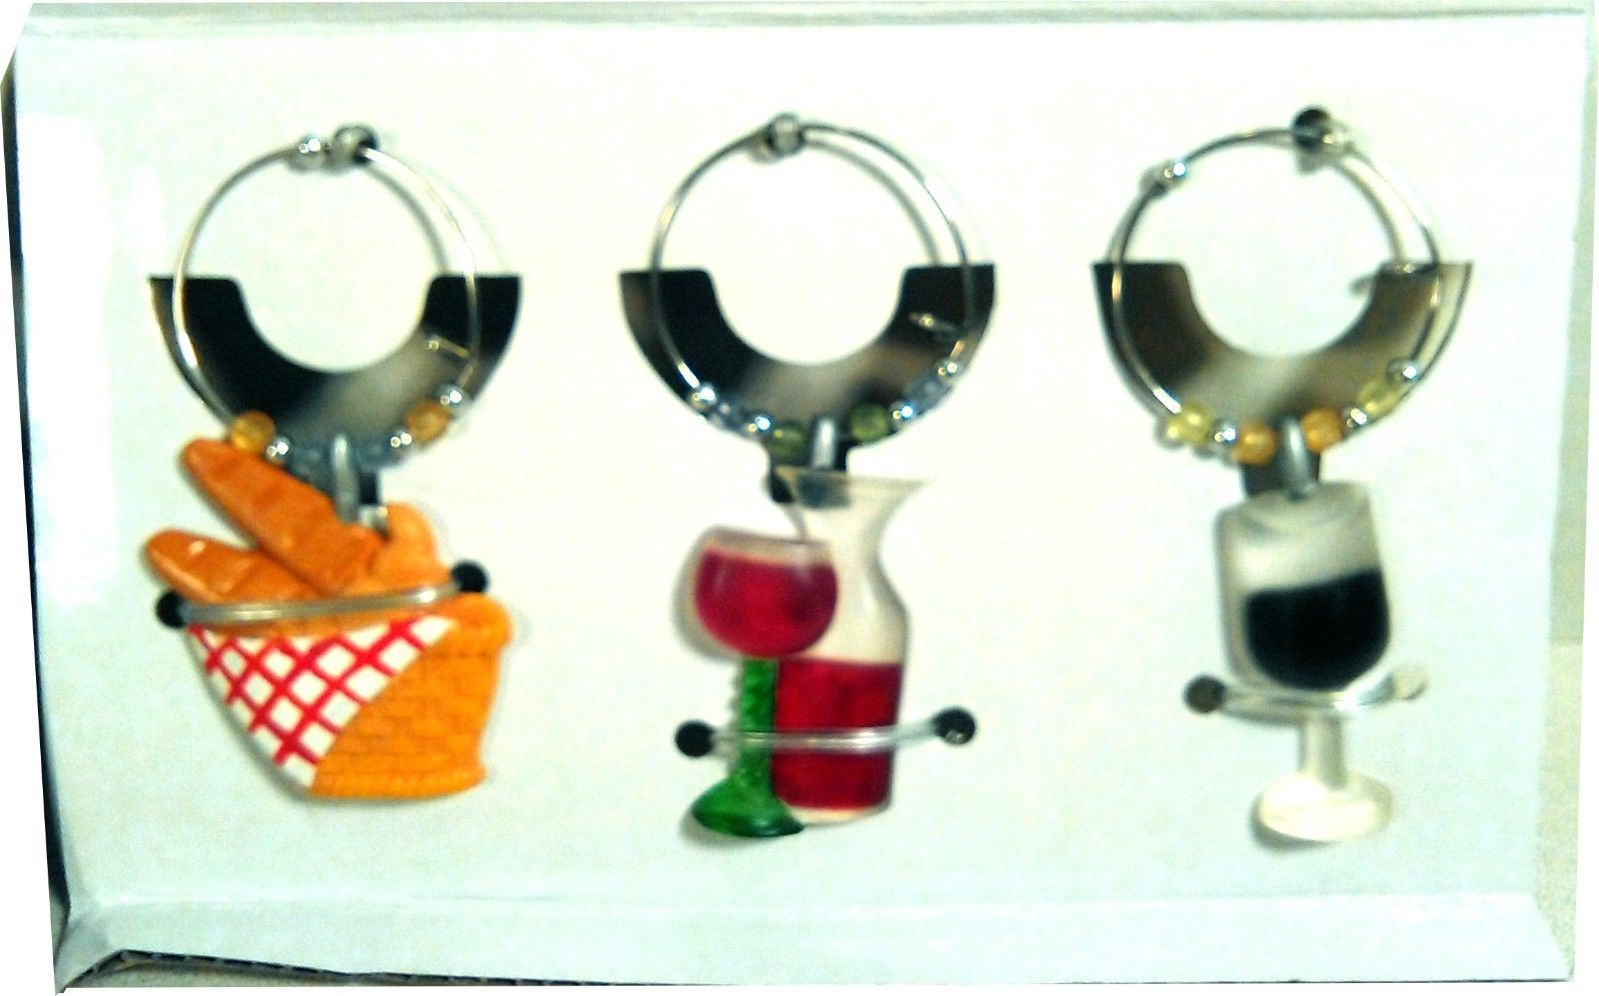 NEW AVON GIFT COLLECTION CHARMING CAFES WINE CHARMS BOTTLE RINGS FREE SHIPPING